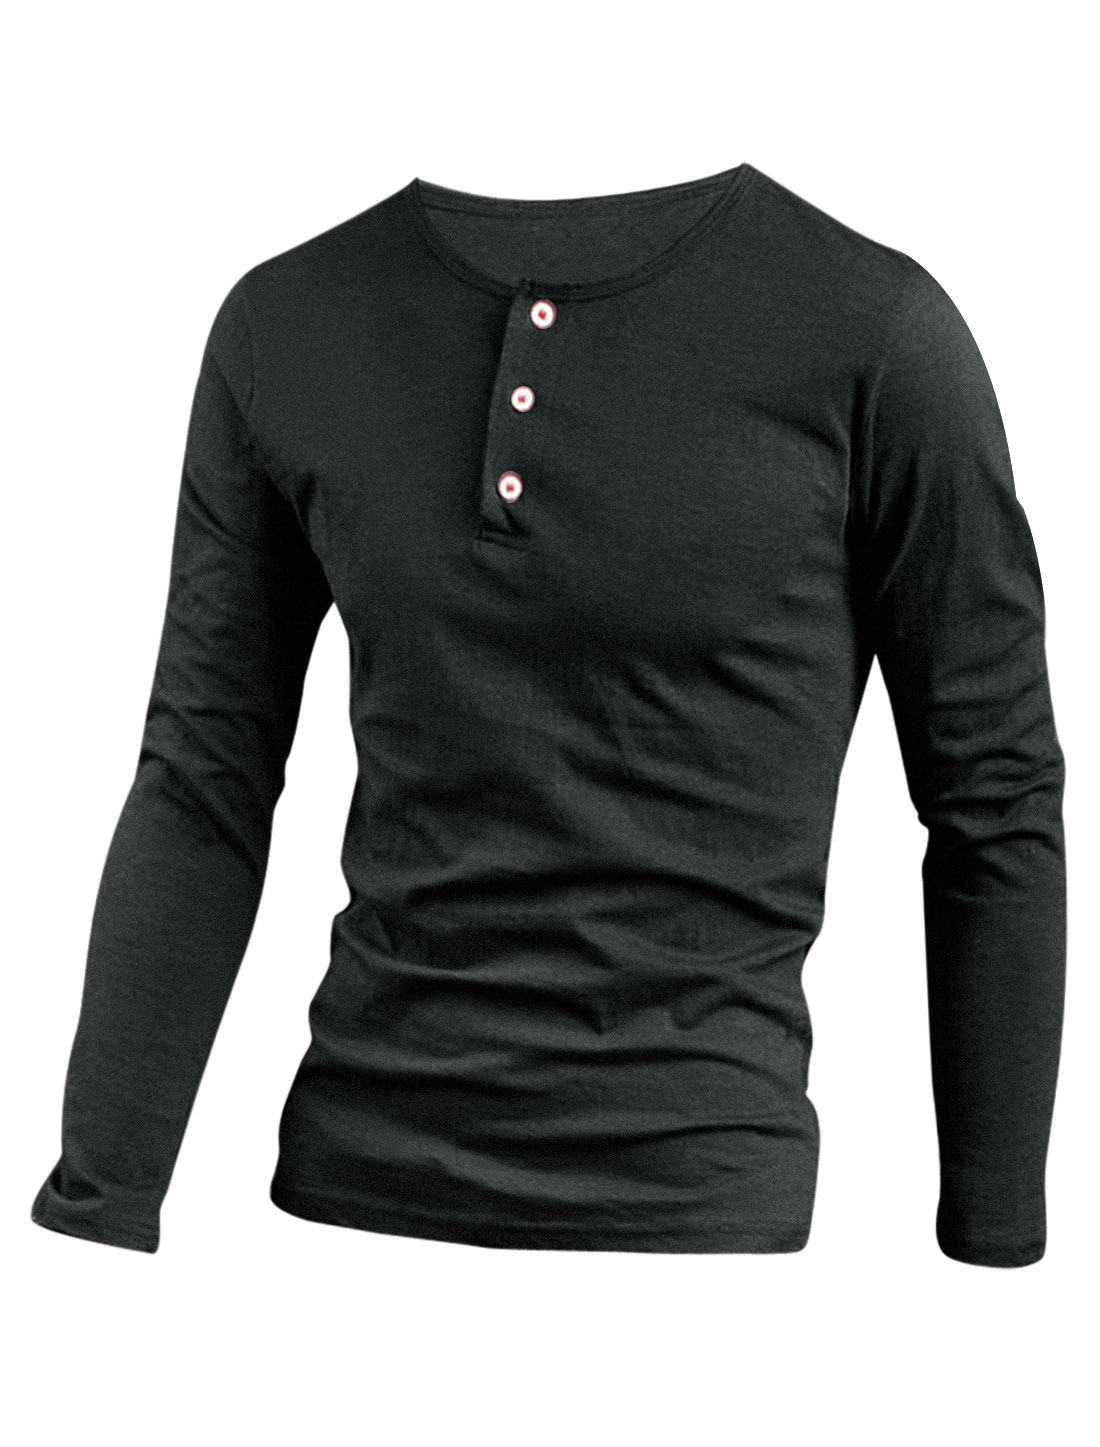 Men Stretchy 1/4 Placket Round Neck Henley Shirt Dark Gray M